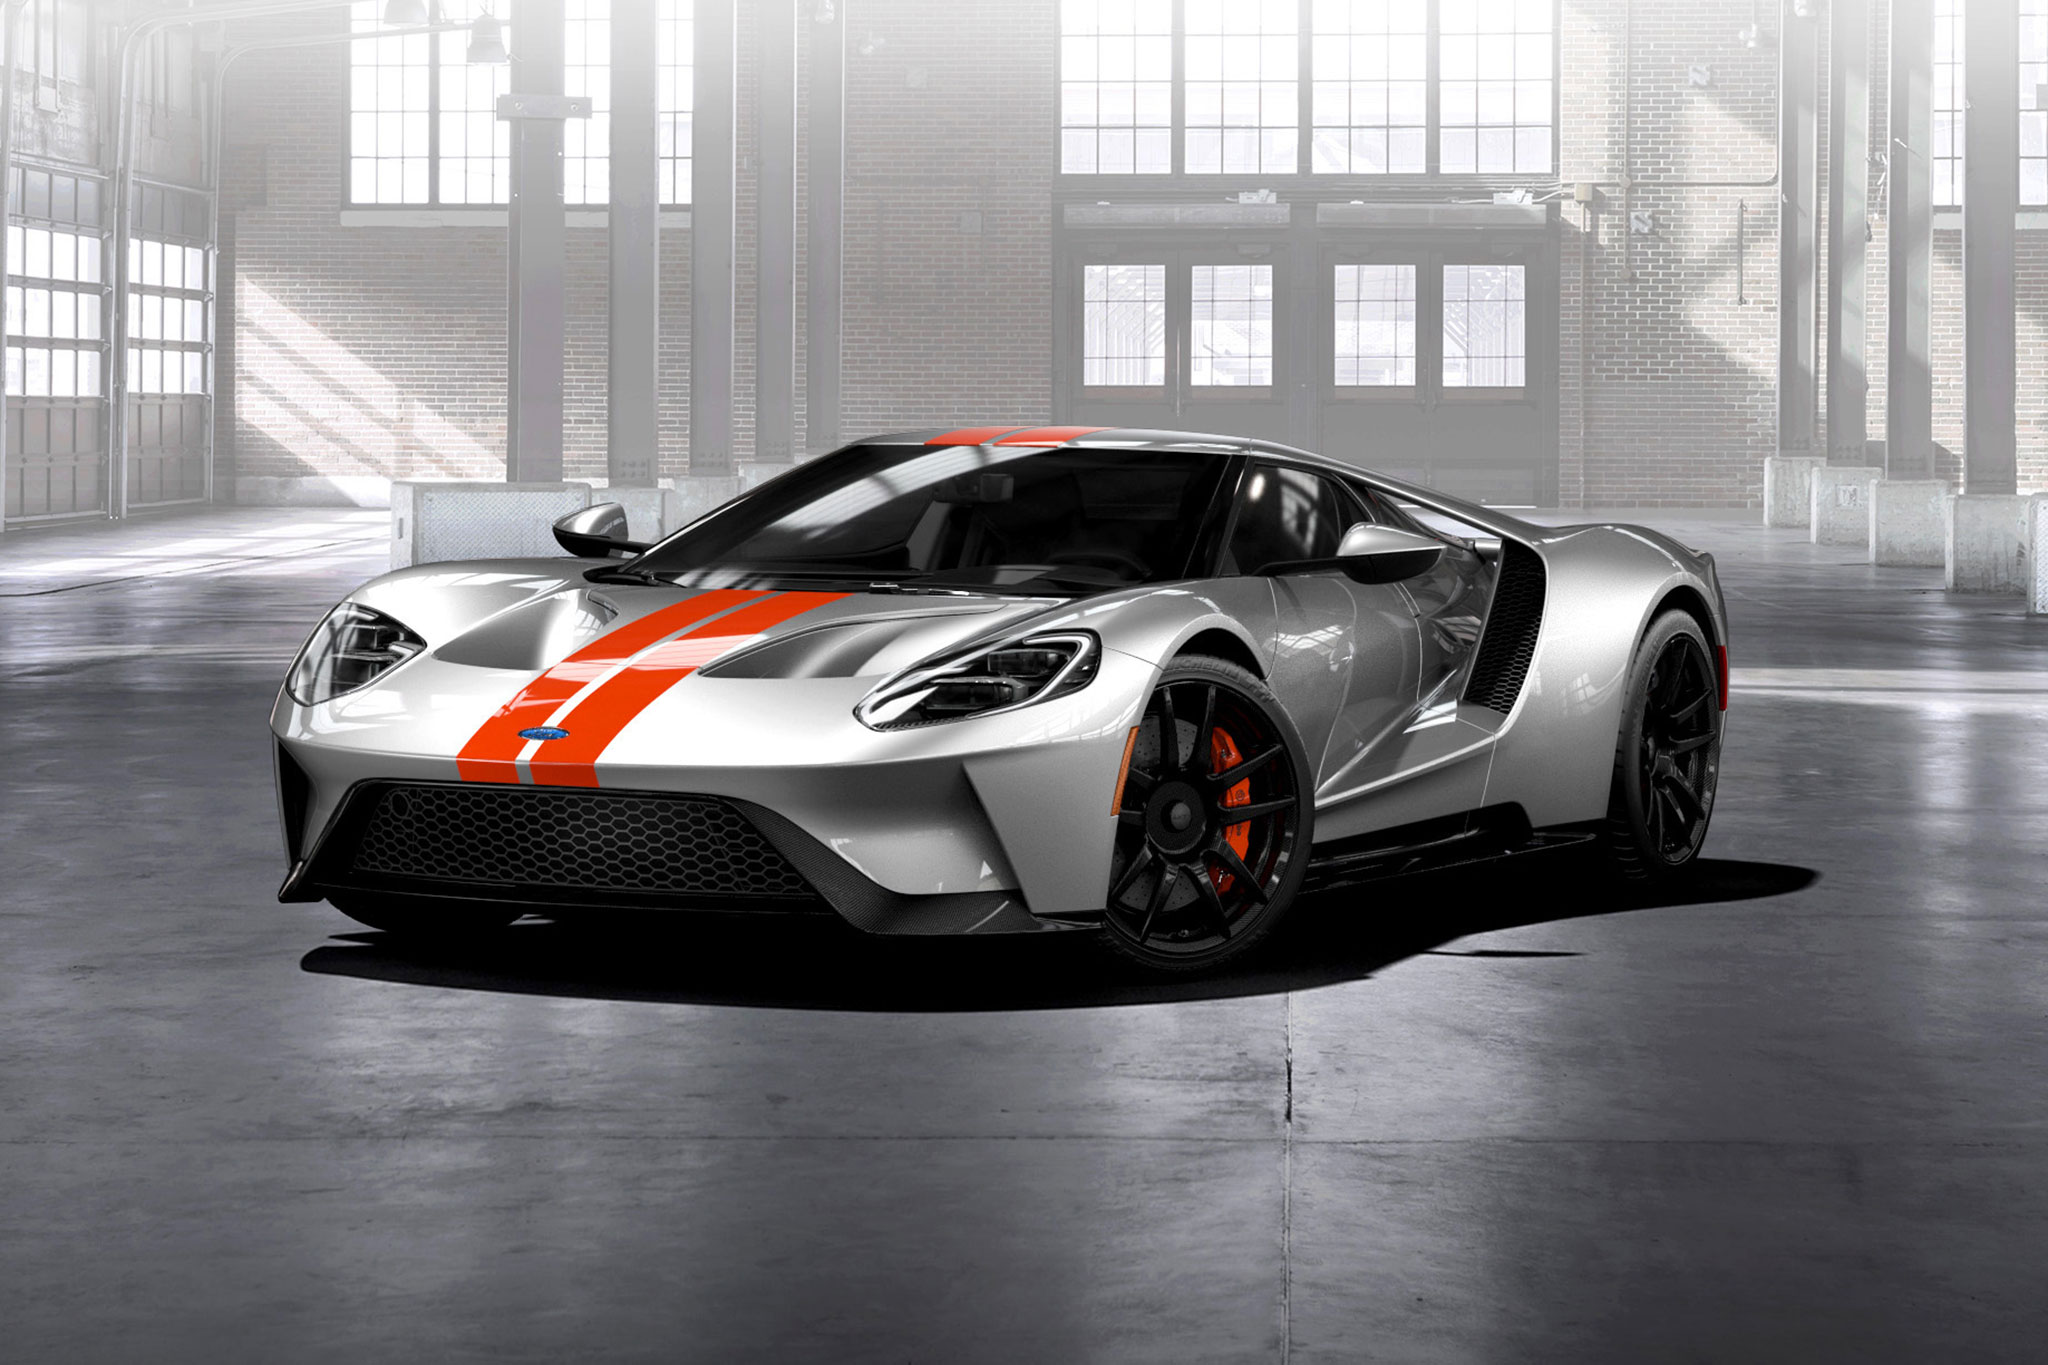 Ford Gt Images Ford Gt Configurator Front Three Quarter Hd Wallpaper And Background Photos